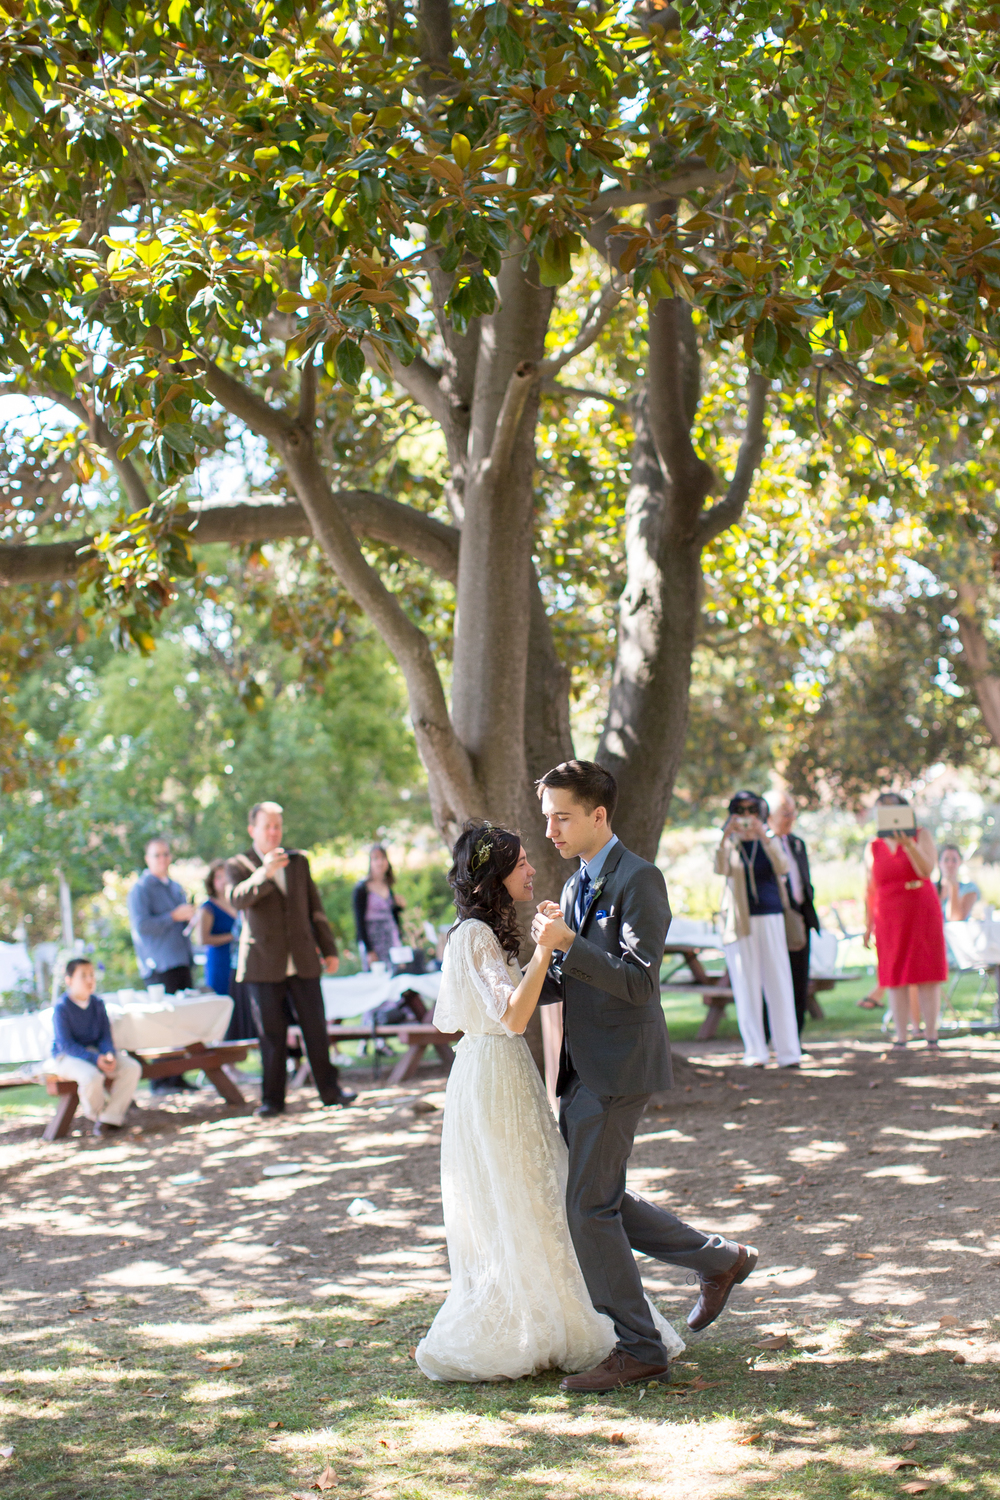 Chico California Wedding and Engagement Photography by TréCreative - Fremont Wedding Photography (243 of 261).jpg